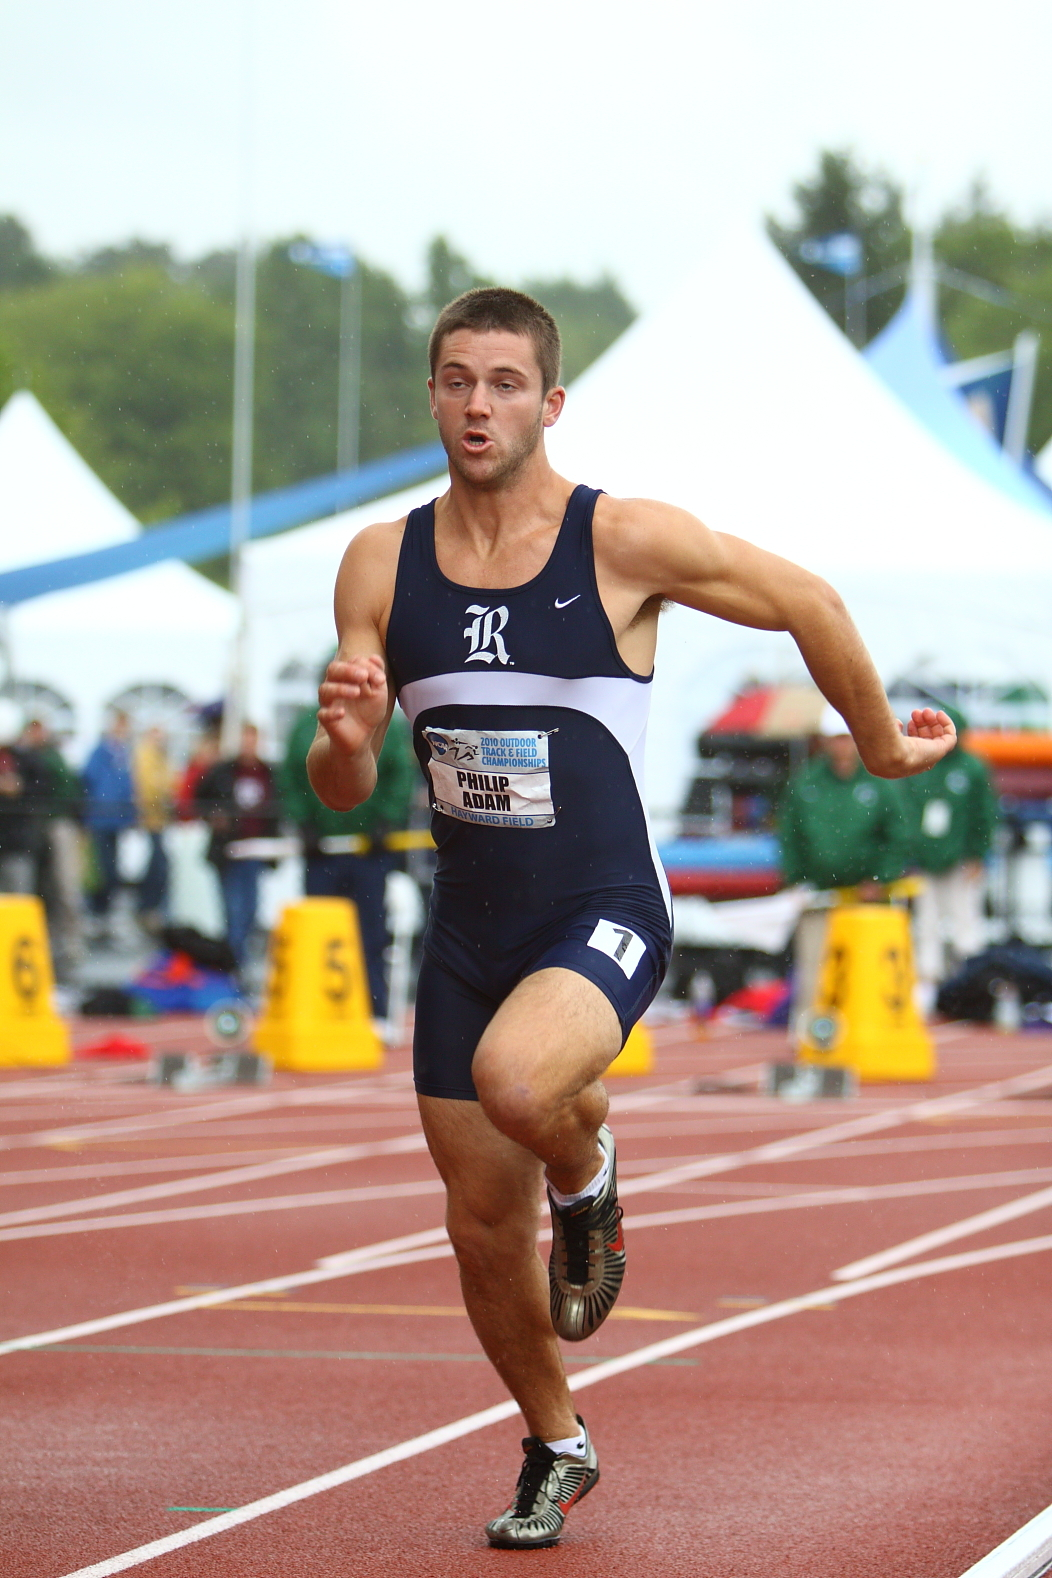 Philip Adam is currently in 10th place after the first day of the decathlon at the NCAA Outdoor Track and Field Championships.